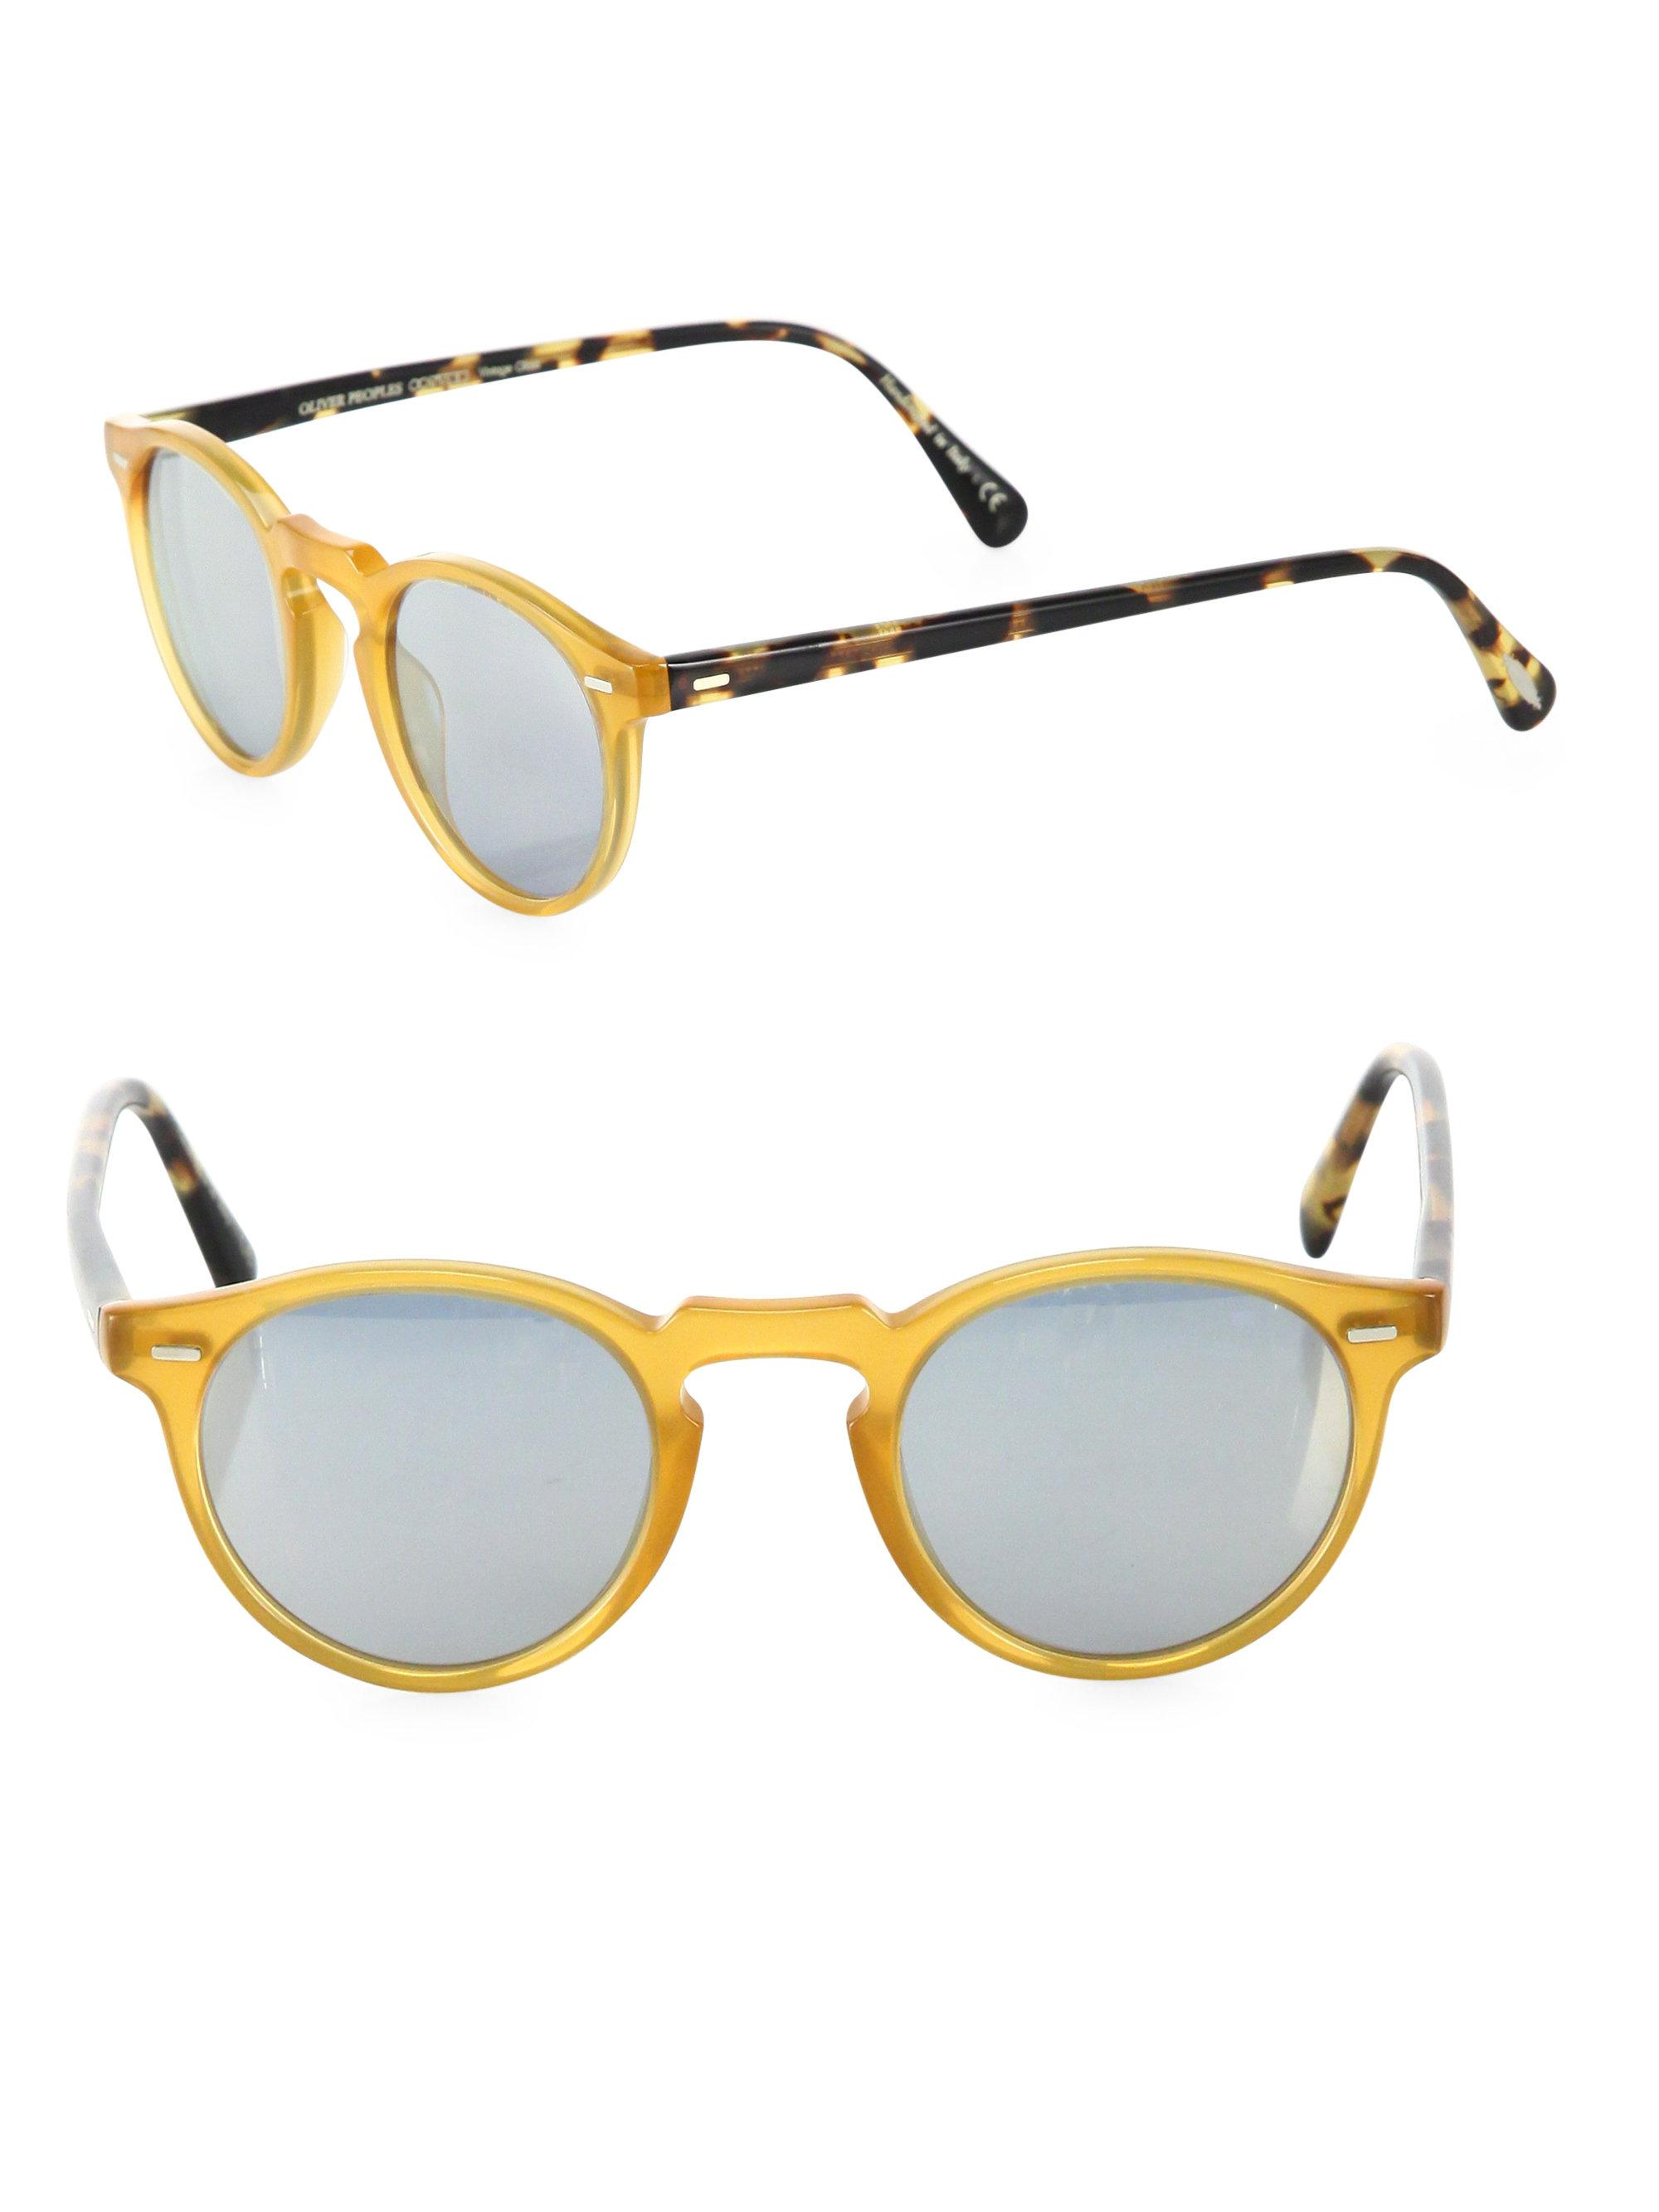 af36942dbbc Oliver Peoples Gregory Peck 47mm Round Sunglasses in Yellow - Lyst